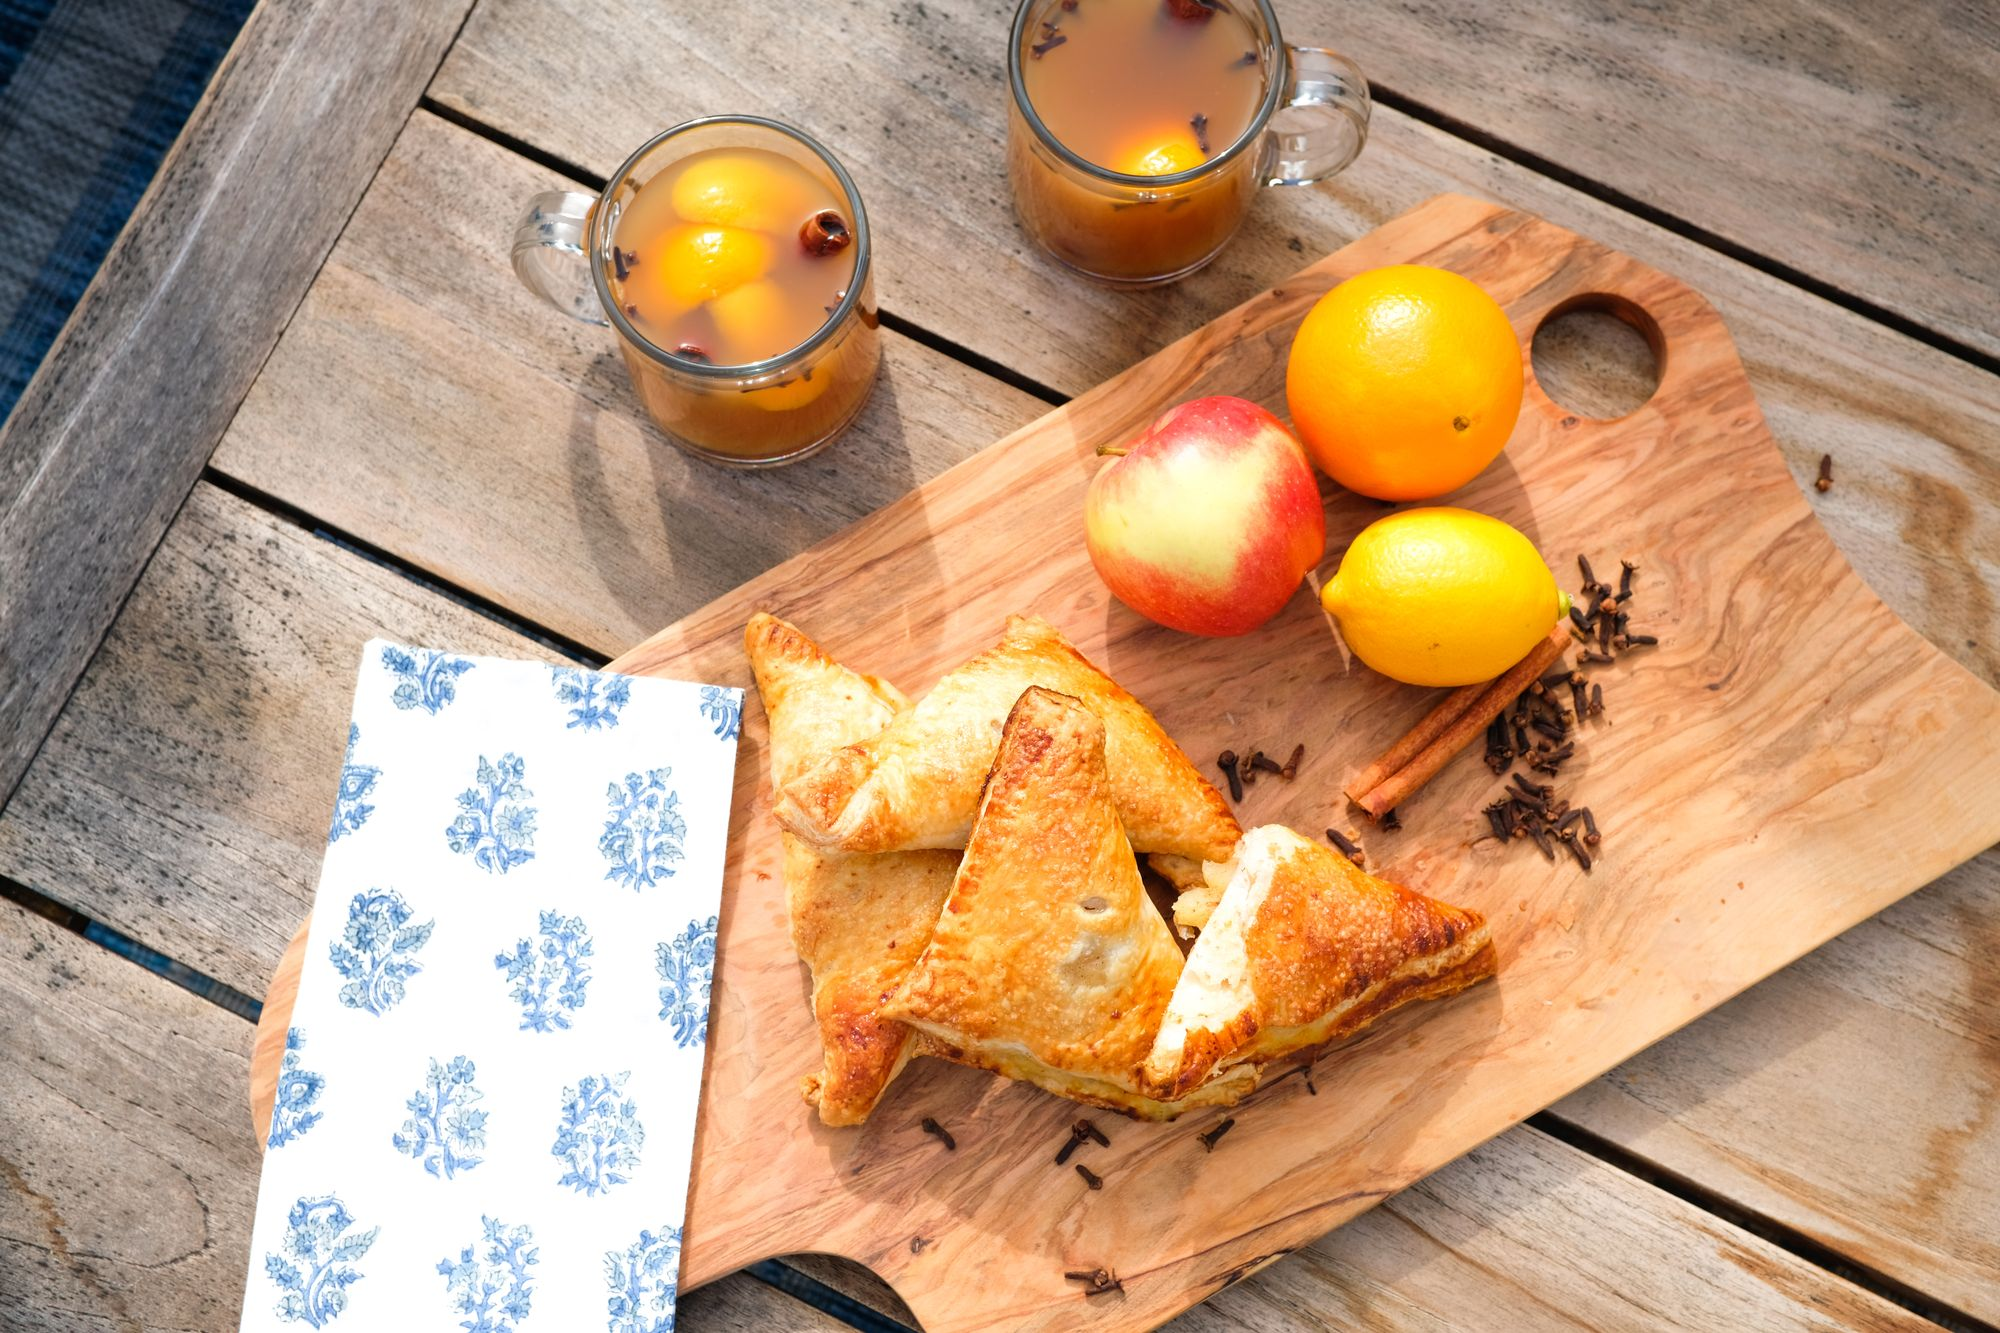 Apple Turnovers and Spiced Cider (Best Enjoyed Outdoors!)